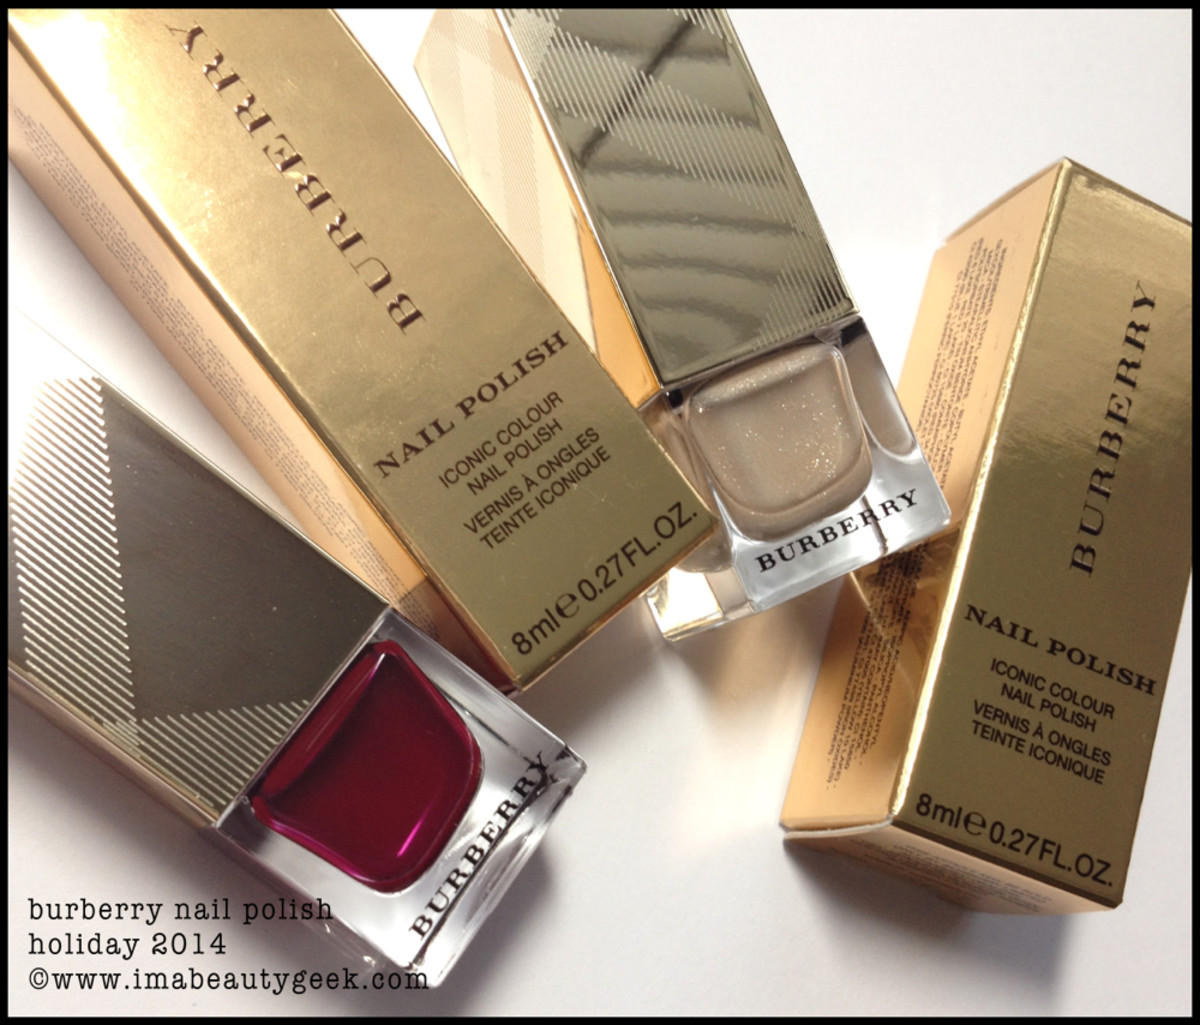 Burberry Nail Polish Holiday 2014 Gold and Oxblood